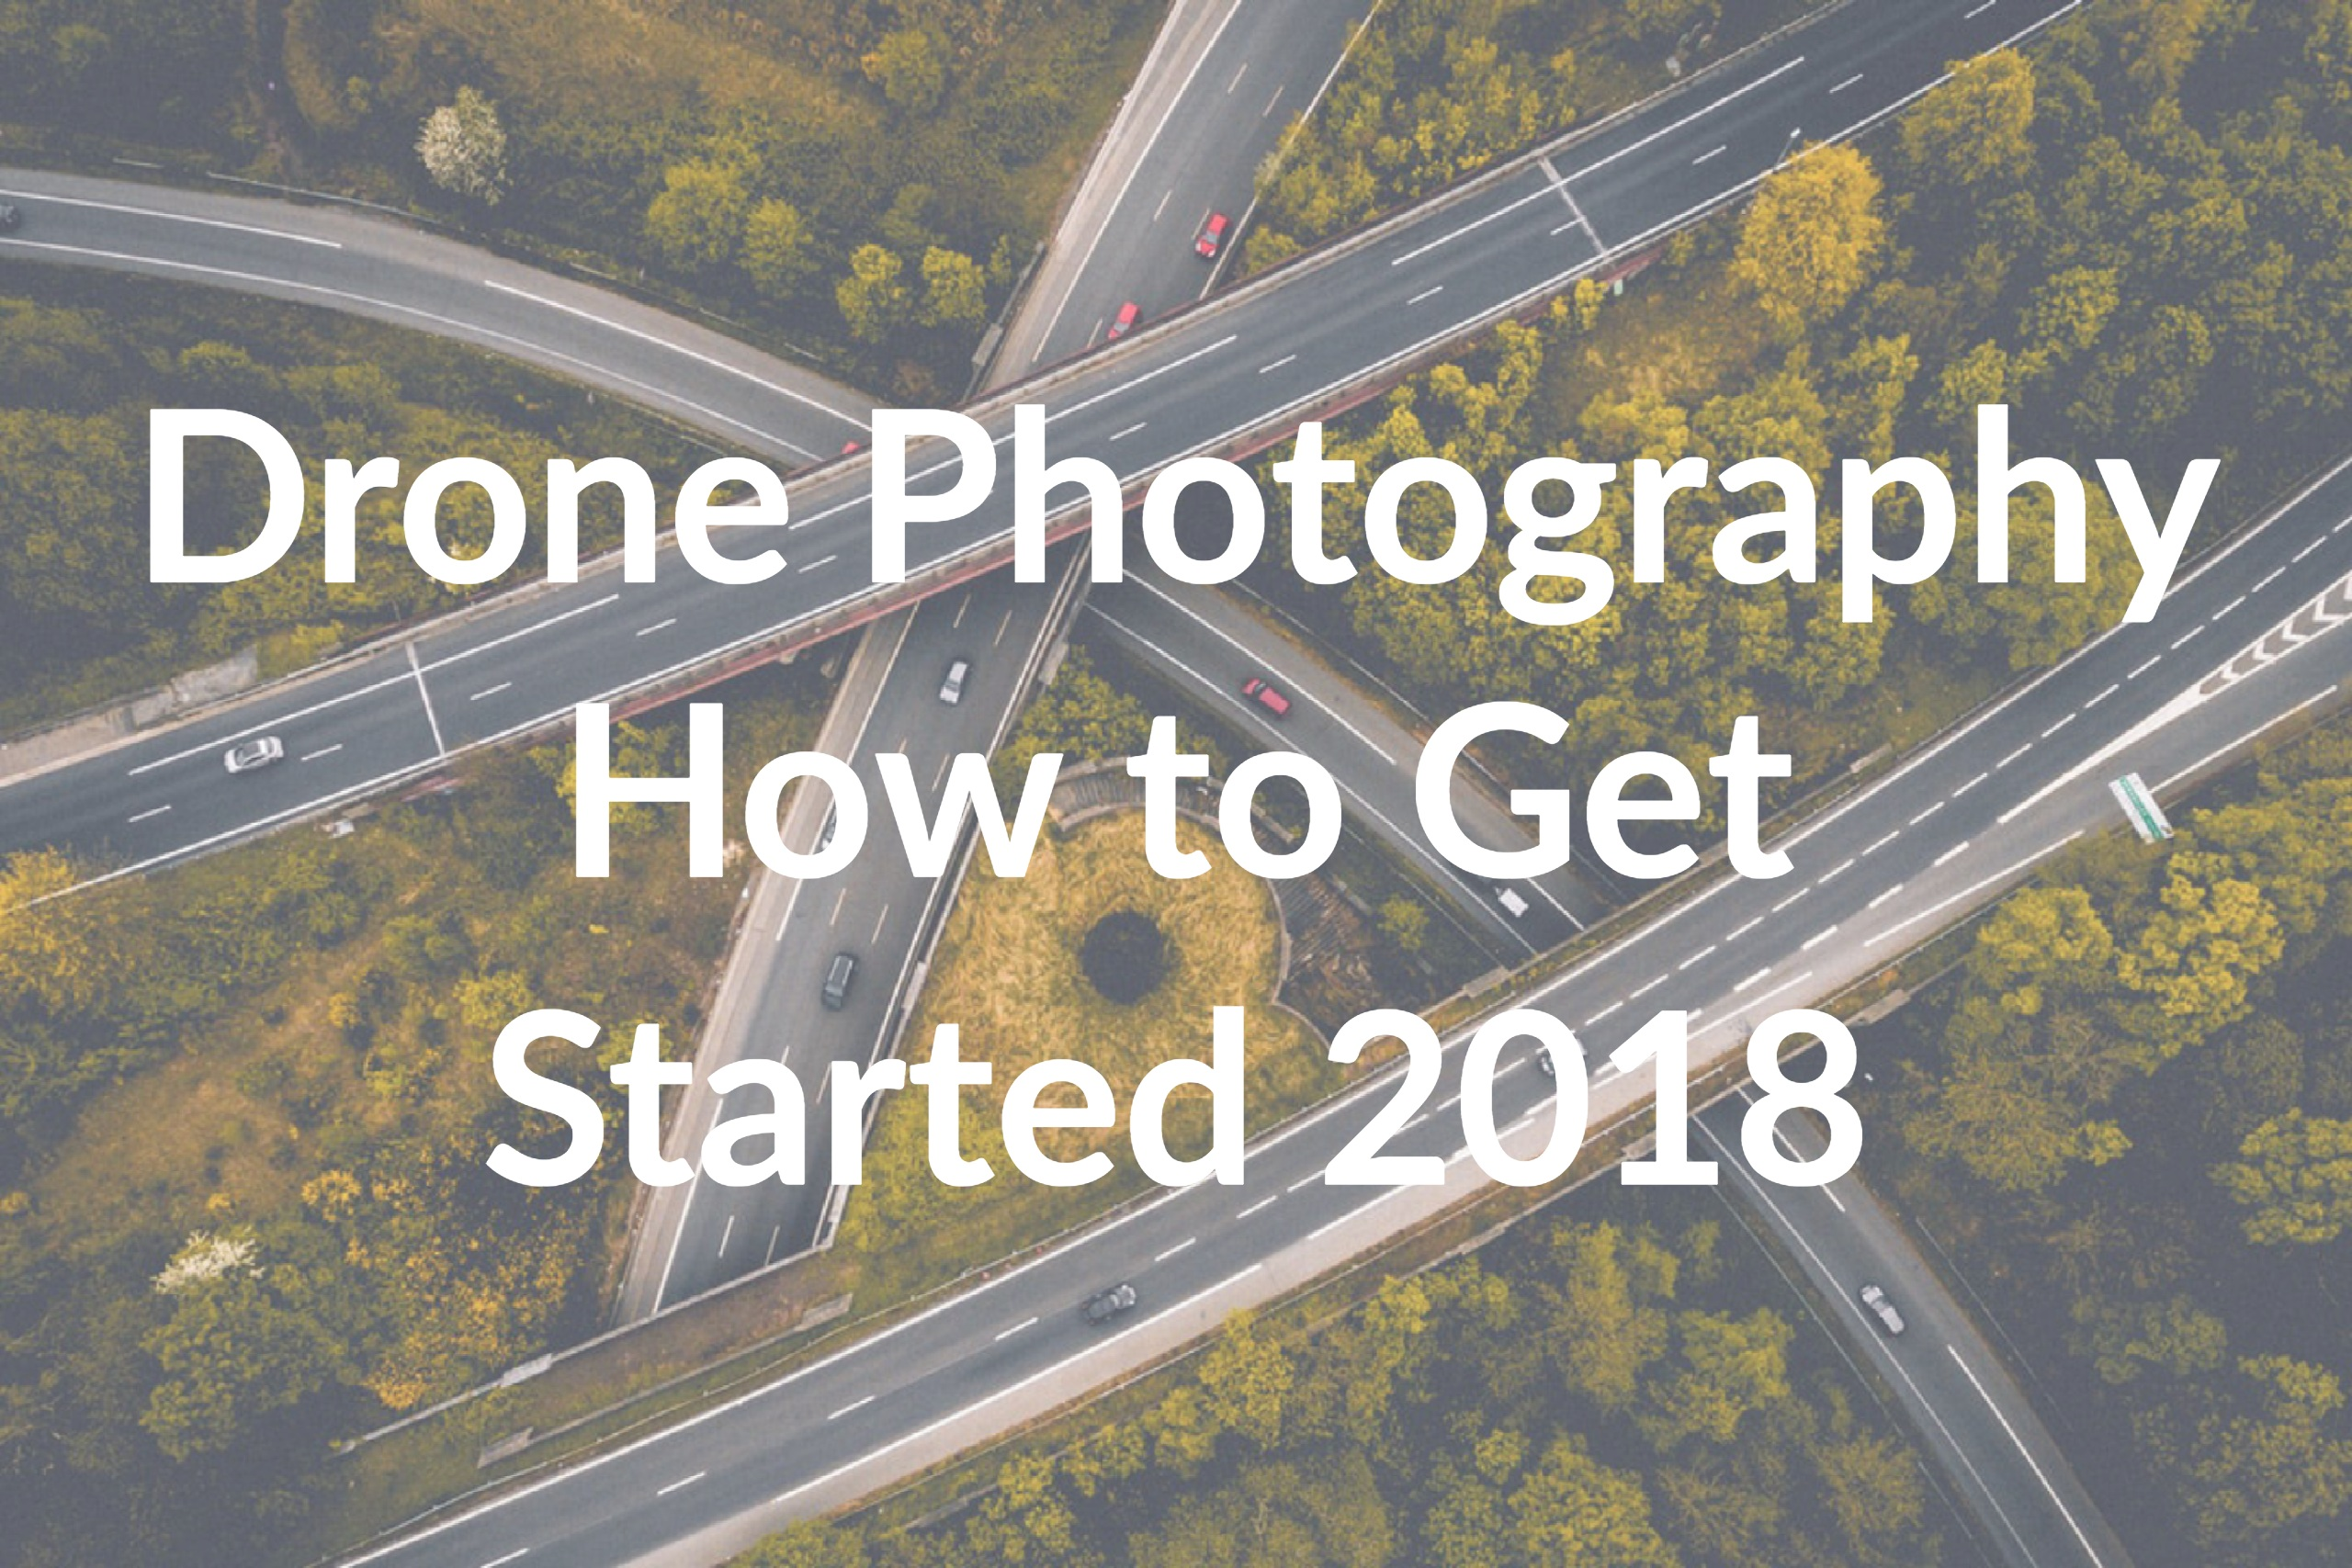 Drone Photography: How to Get Started in 2018